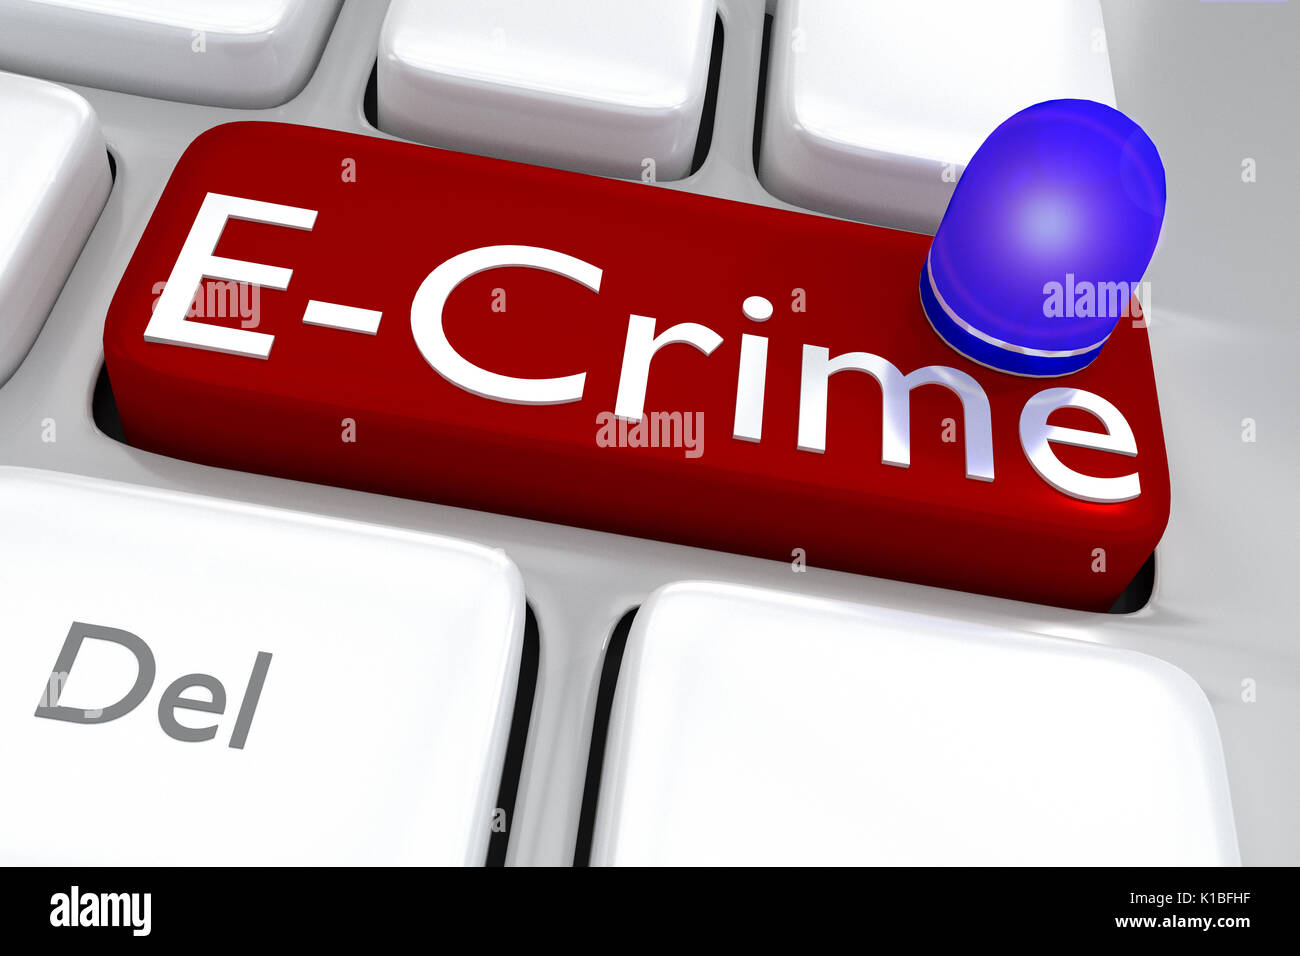 Render illustration of computer keyboard with the print E-Crime on a red button with a police car roof lamp - Stock Image